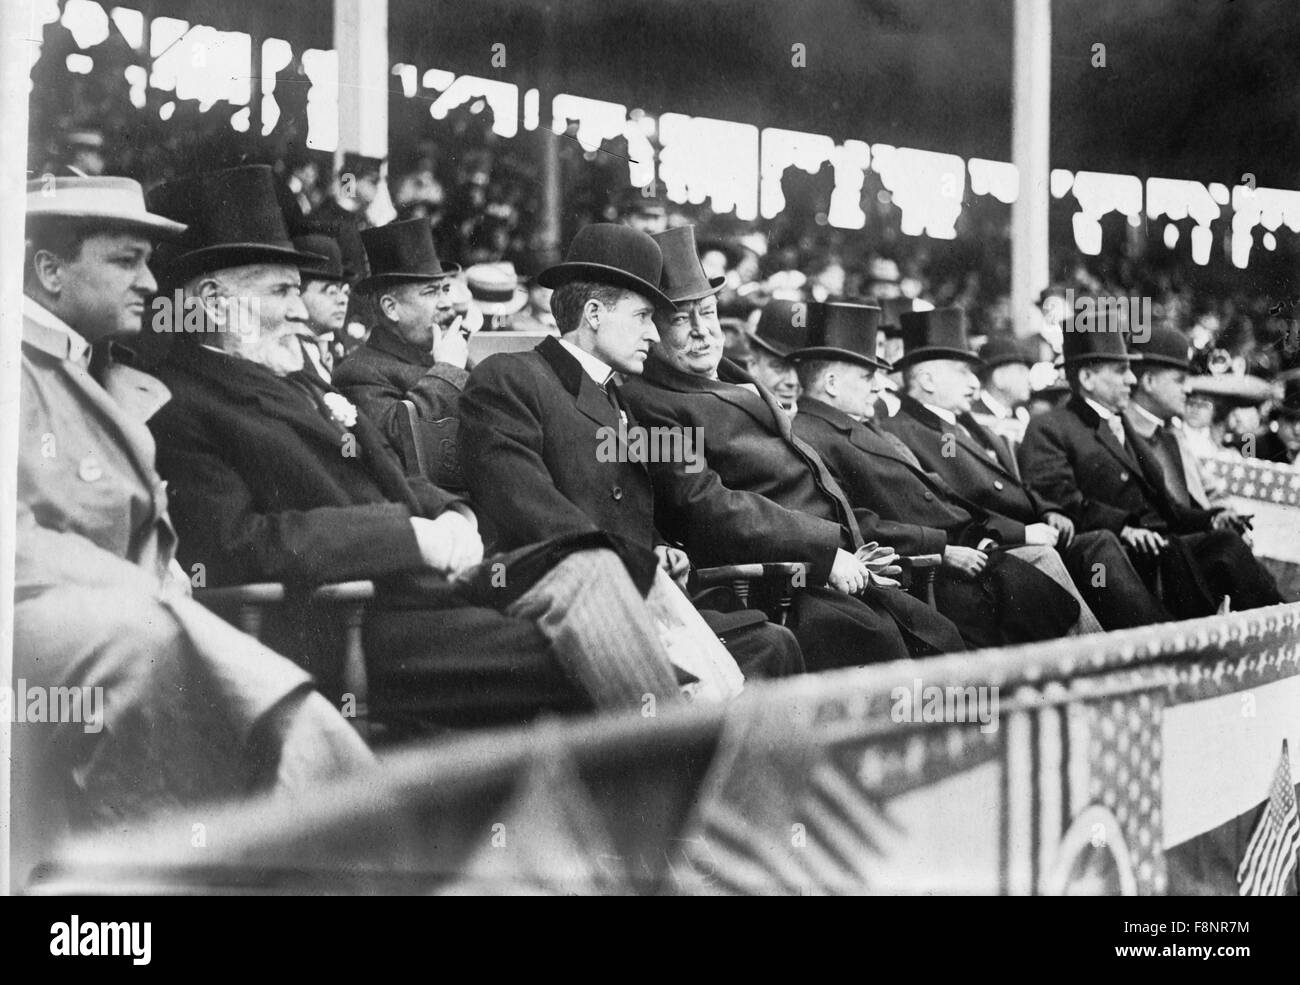 Le président des États-Unis, William H. Taft au jeu de base-ball, Washington, DC, USA, vers 1910 Photo Stock